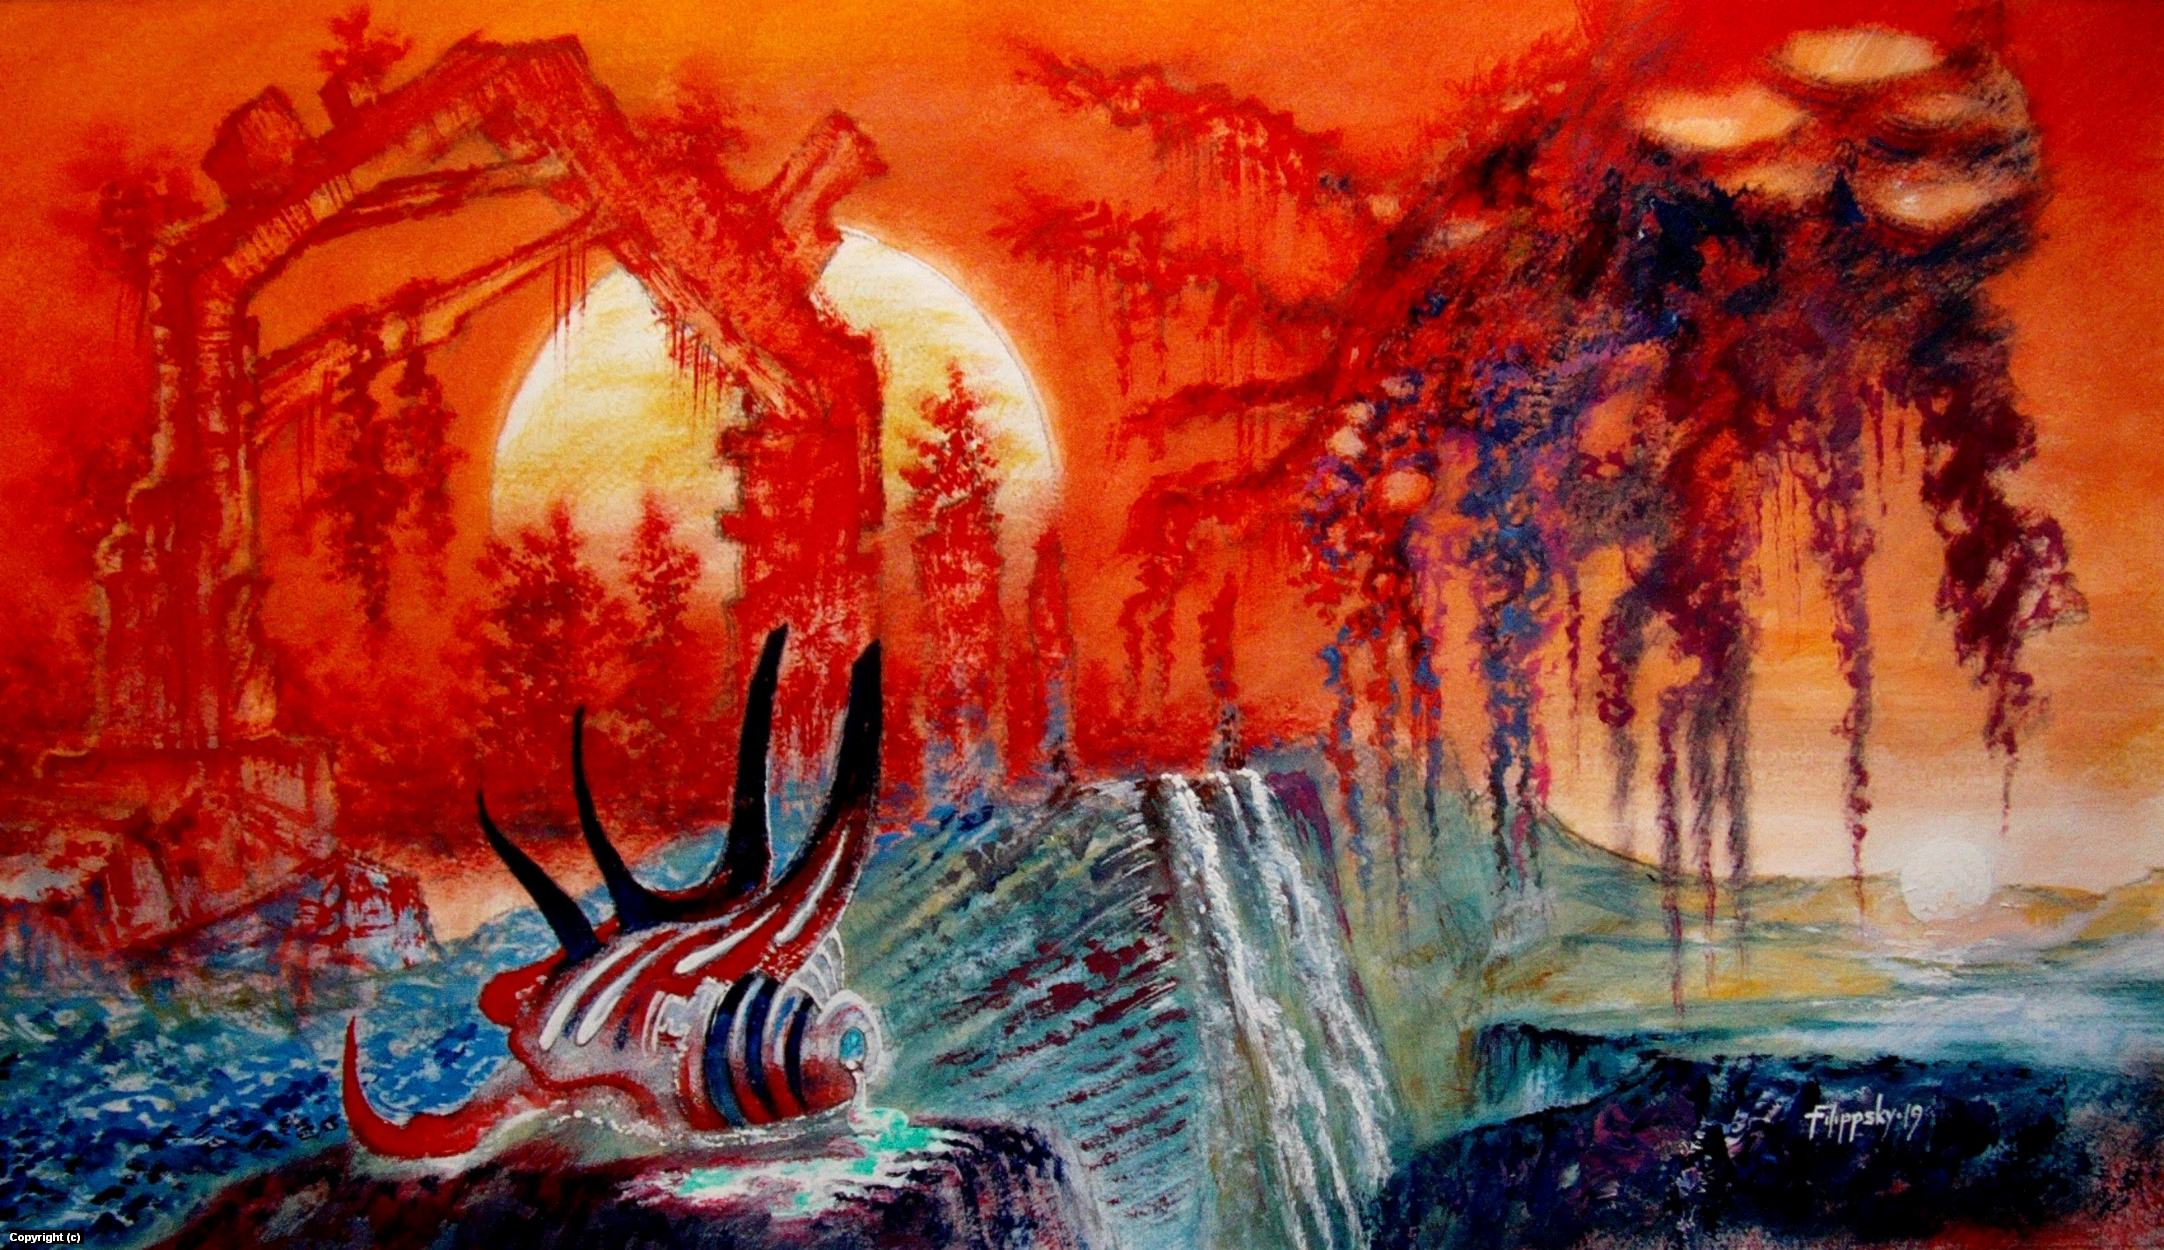 Amorphous alien among the ruins at sunset of the double star. Artwork by Victor Filippsky